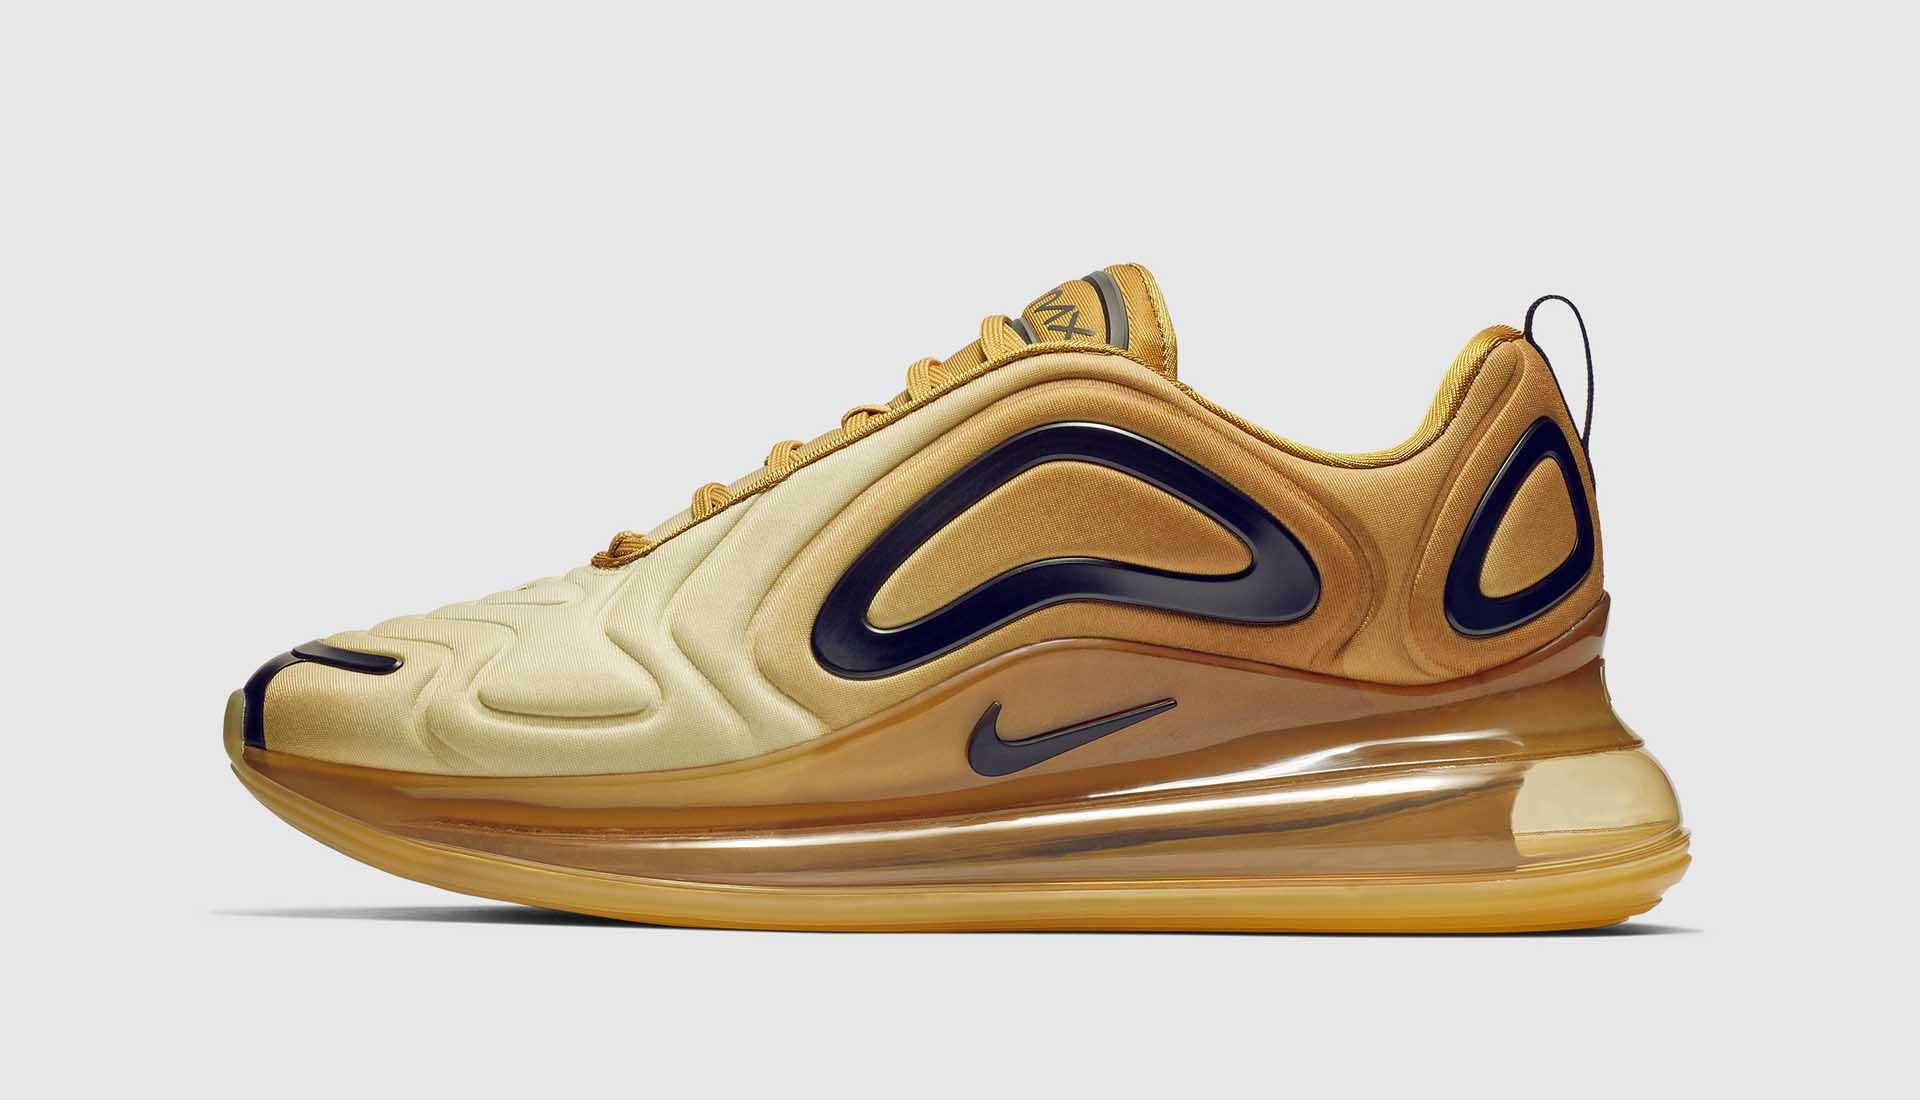 948046fee5ee Nike Air Max 720 Nears Drop Date - SoccerBible.